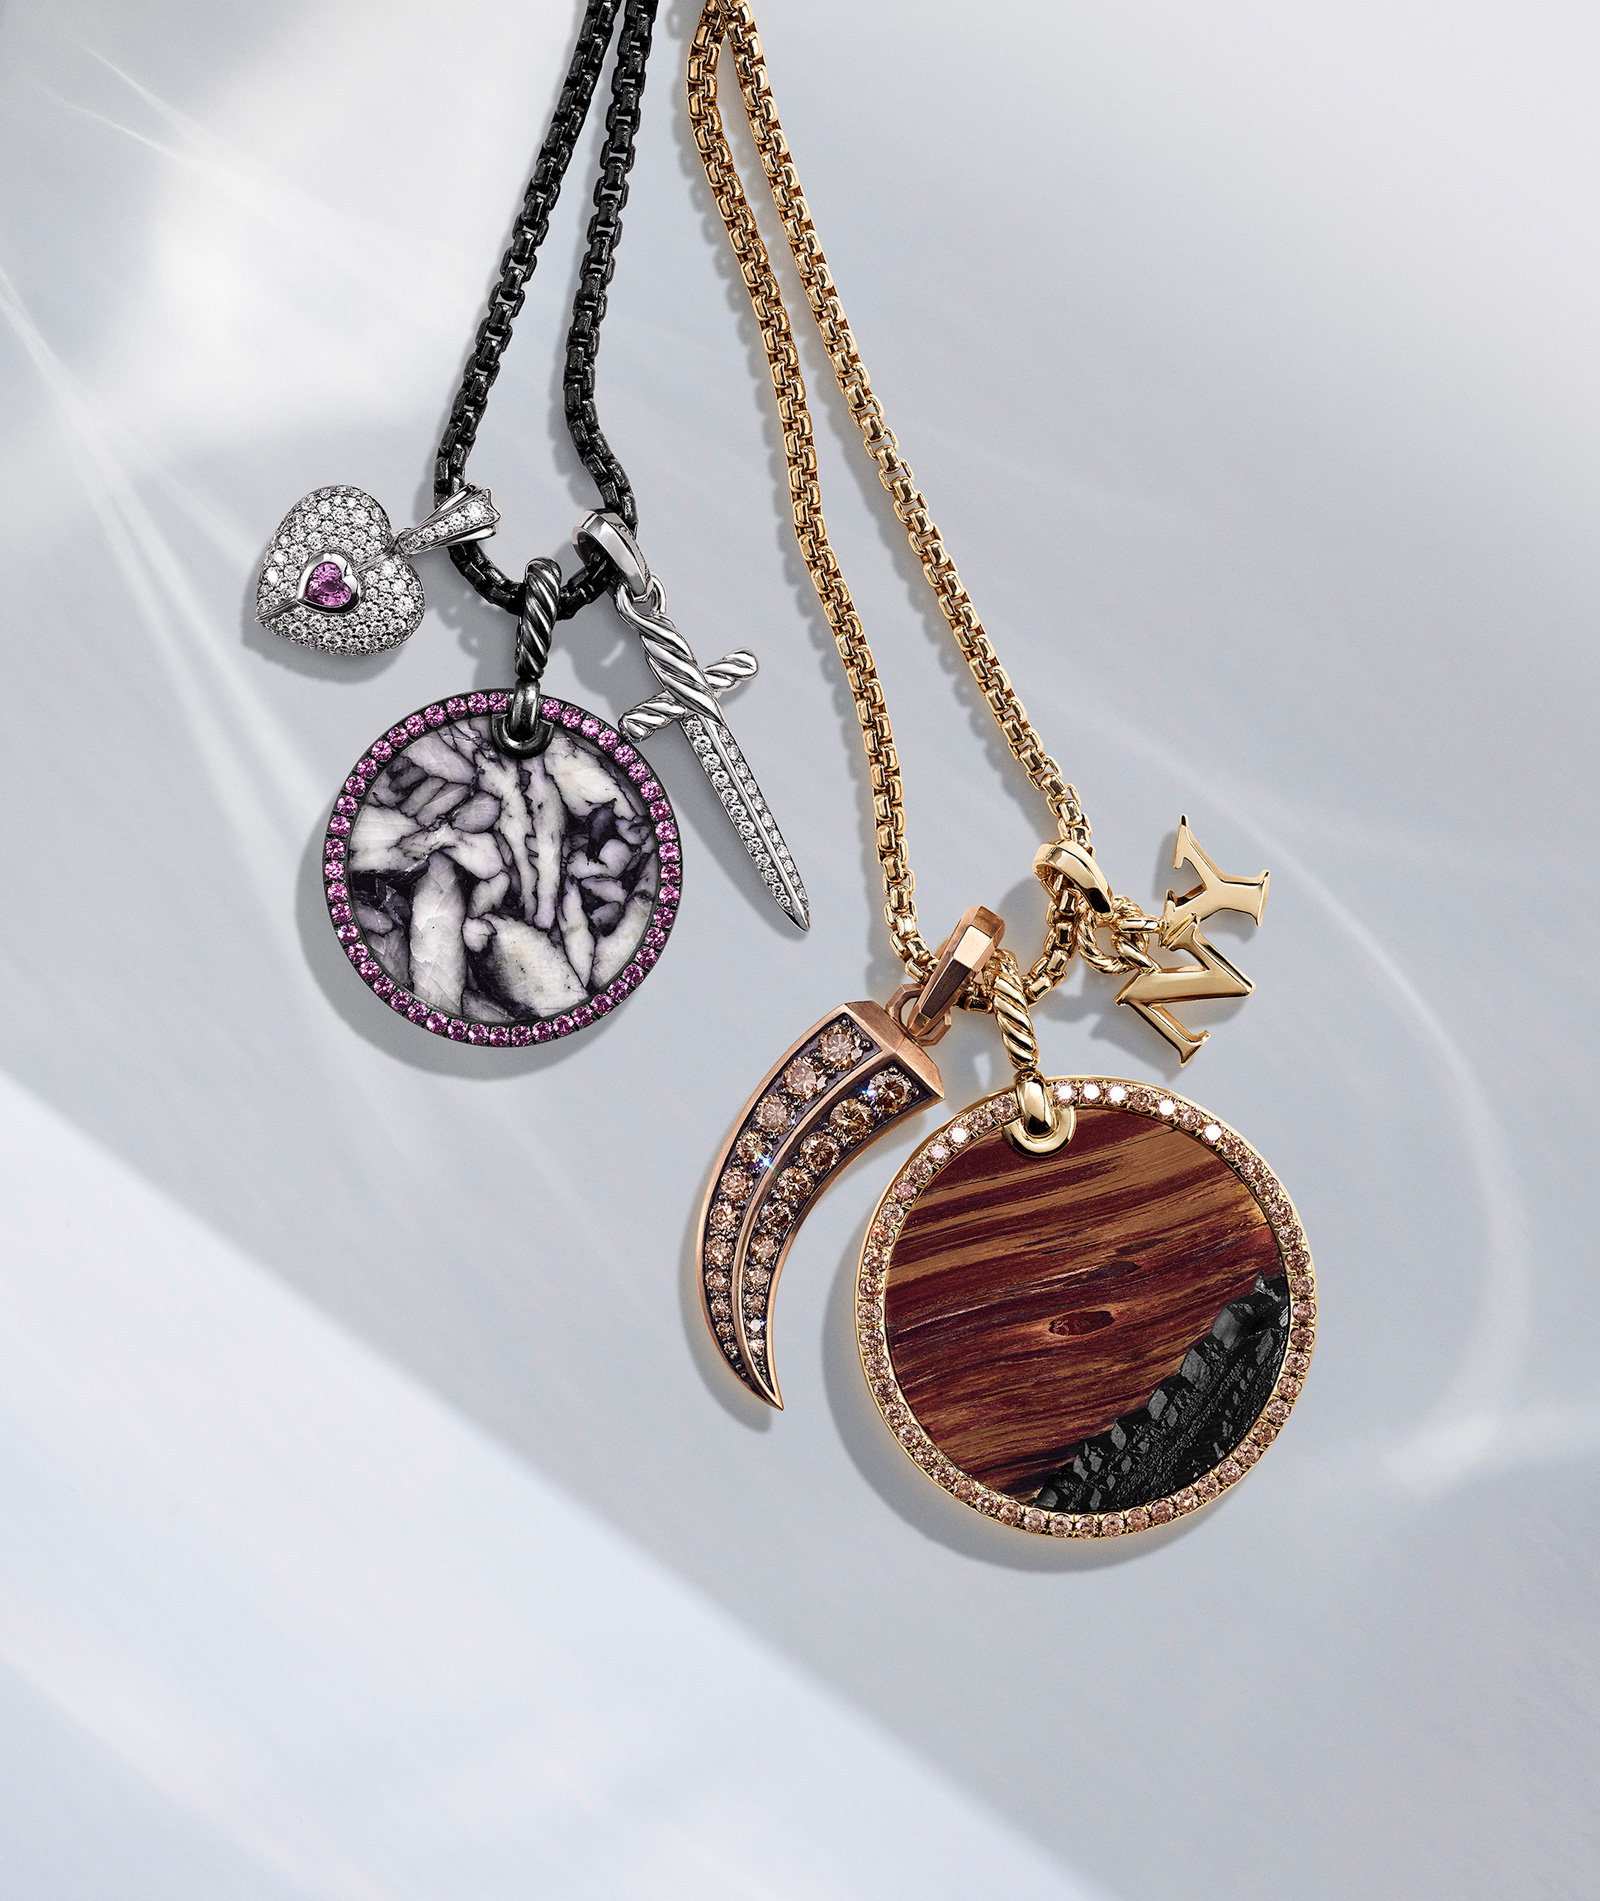 """A color photograph shows two David Yurman chain necklaces placed on a white surface, each strung with three amulets each. The amulets come in various shapes, including circles, a heart, dagger, horn and the letters """"NY."""" The jewelry is crafted from 18K yellow, rose or white gold, or darkened sterling silver with or without tiger's eye, yellow sapphires, white or cognac diamonds, pinolith, rubies or pink sapphire."""